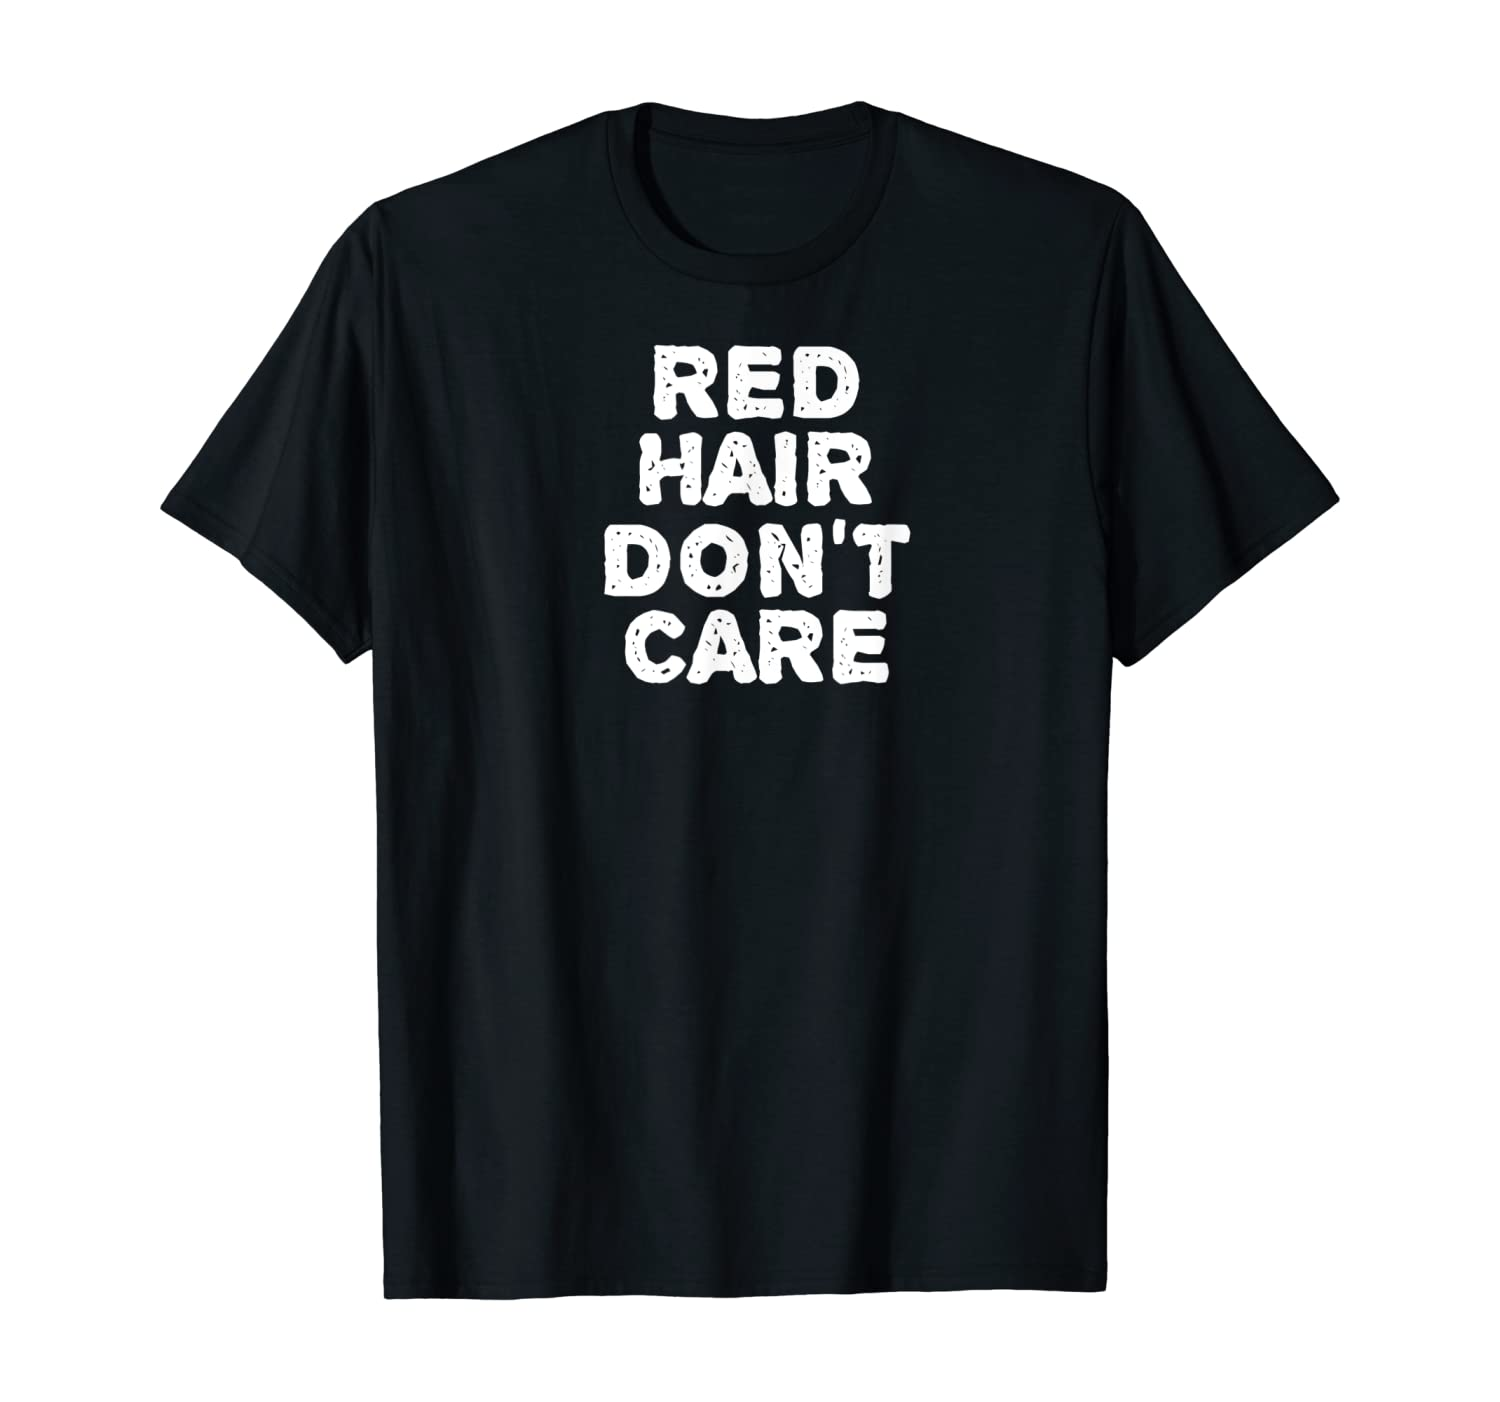 RED HAIR DON'T CARE T-Shirt Gift | Ginger Redhead